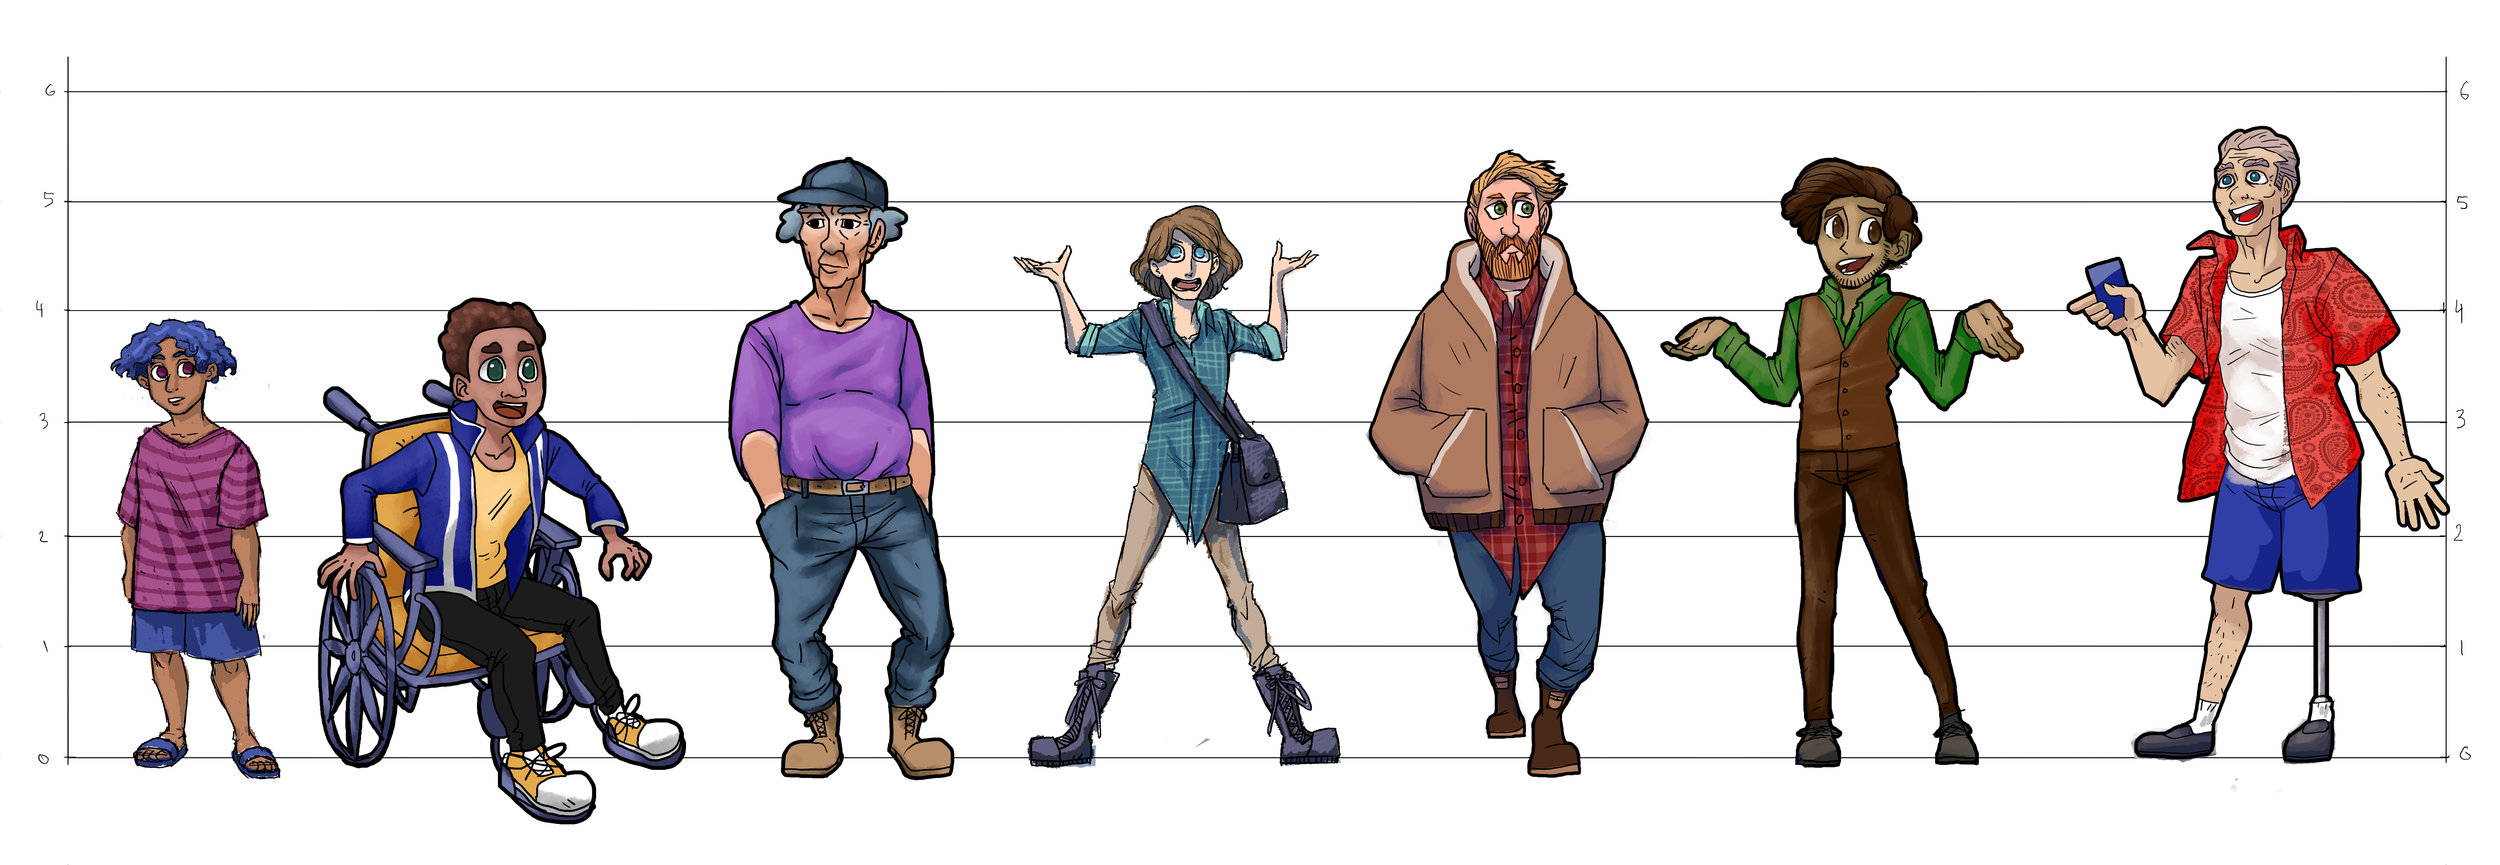 CharacterConcepts_LineUp_Males_v2_JessicaGreving.jpg